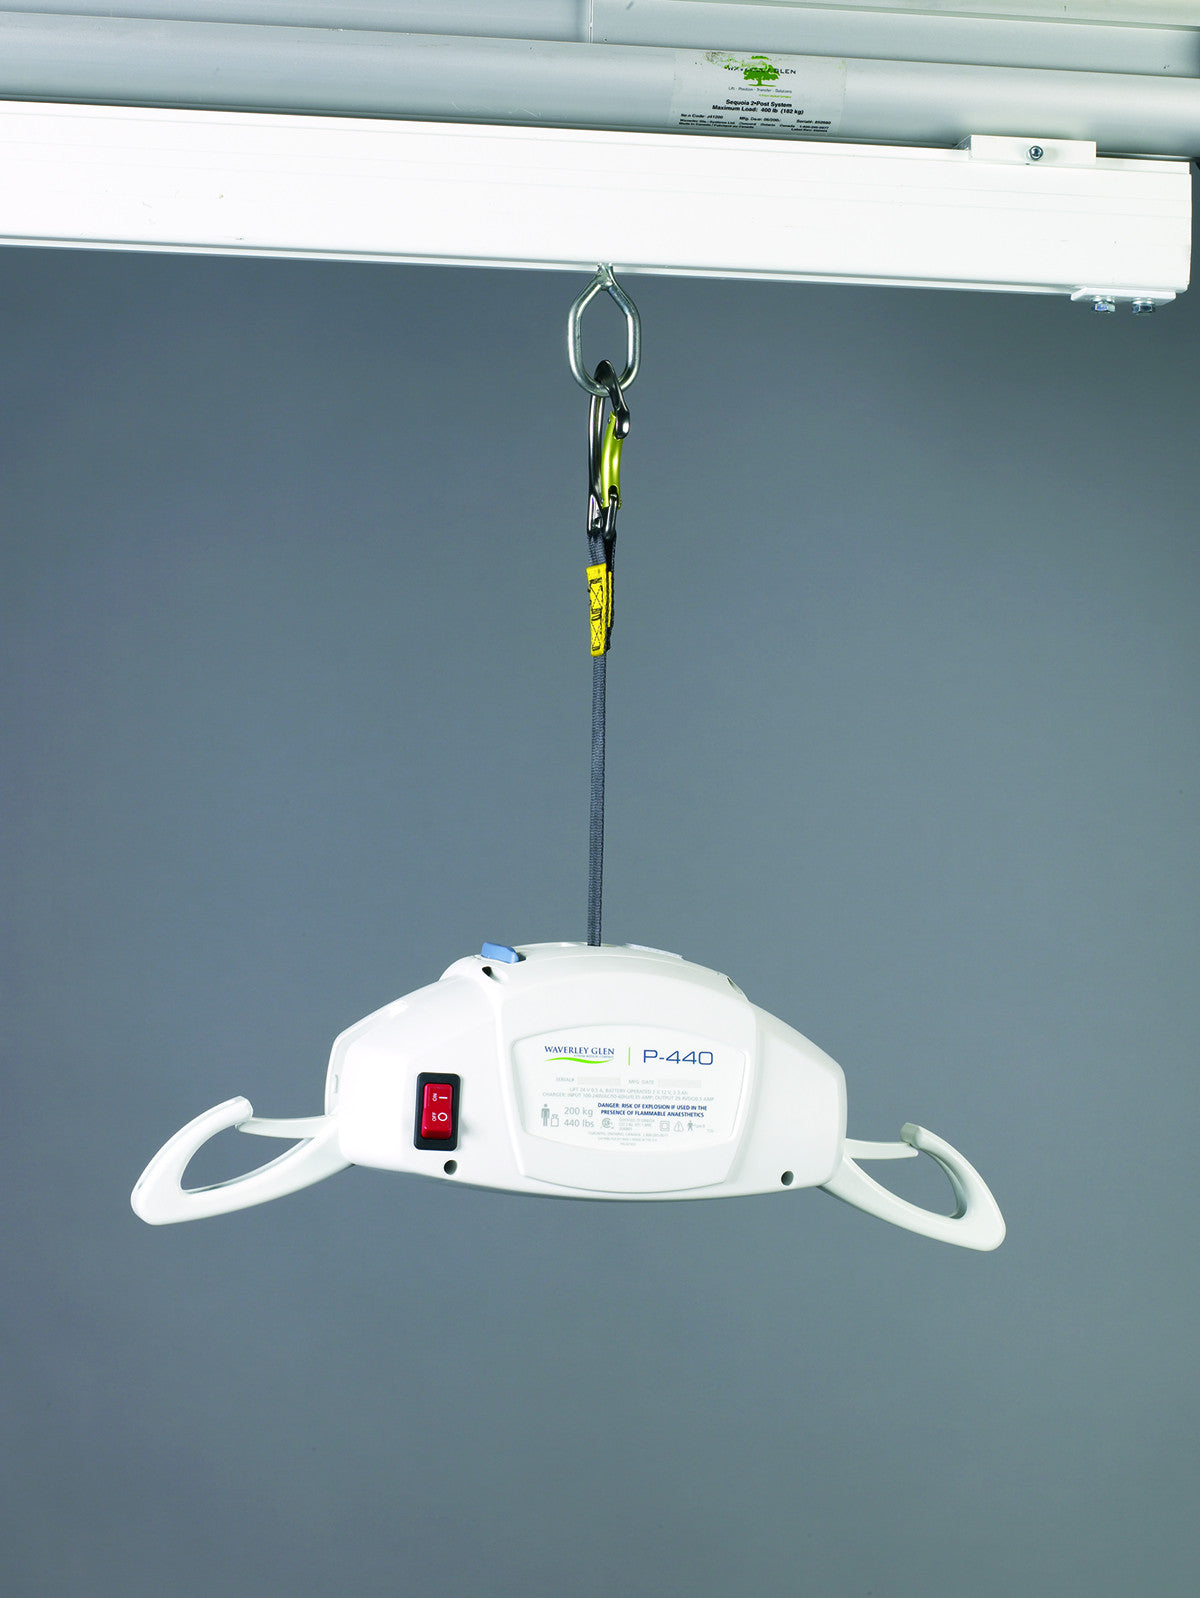 Waverley glen ceiling lift manual